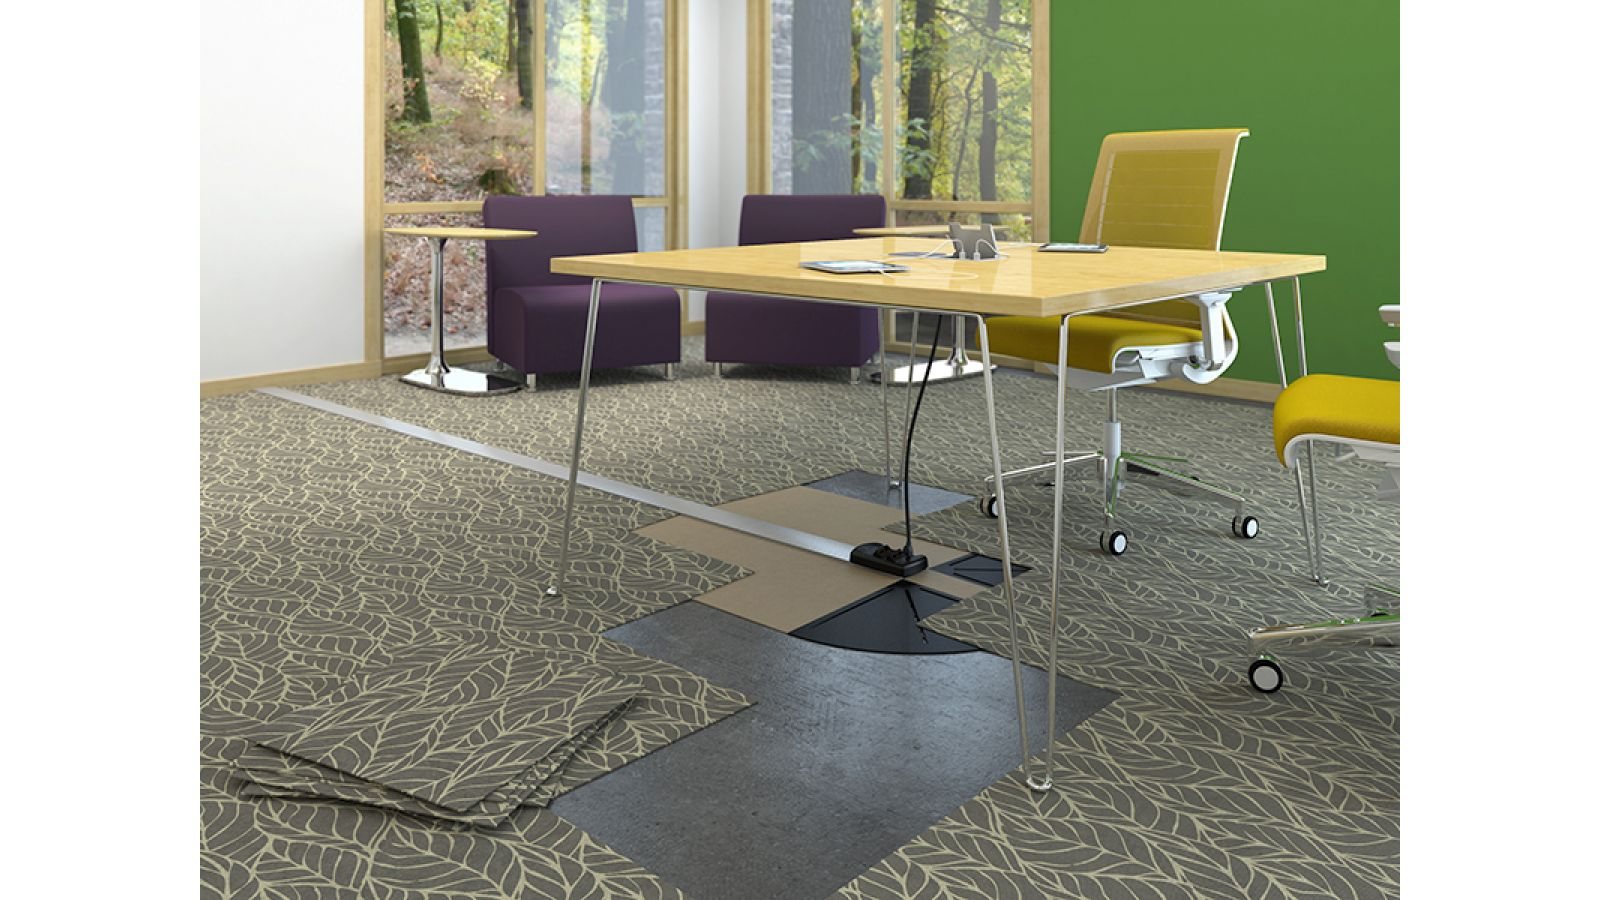 Connectrac In-Carpet and On-Floor Wireways